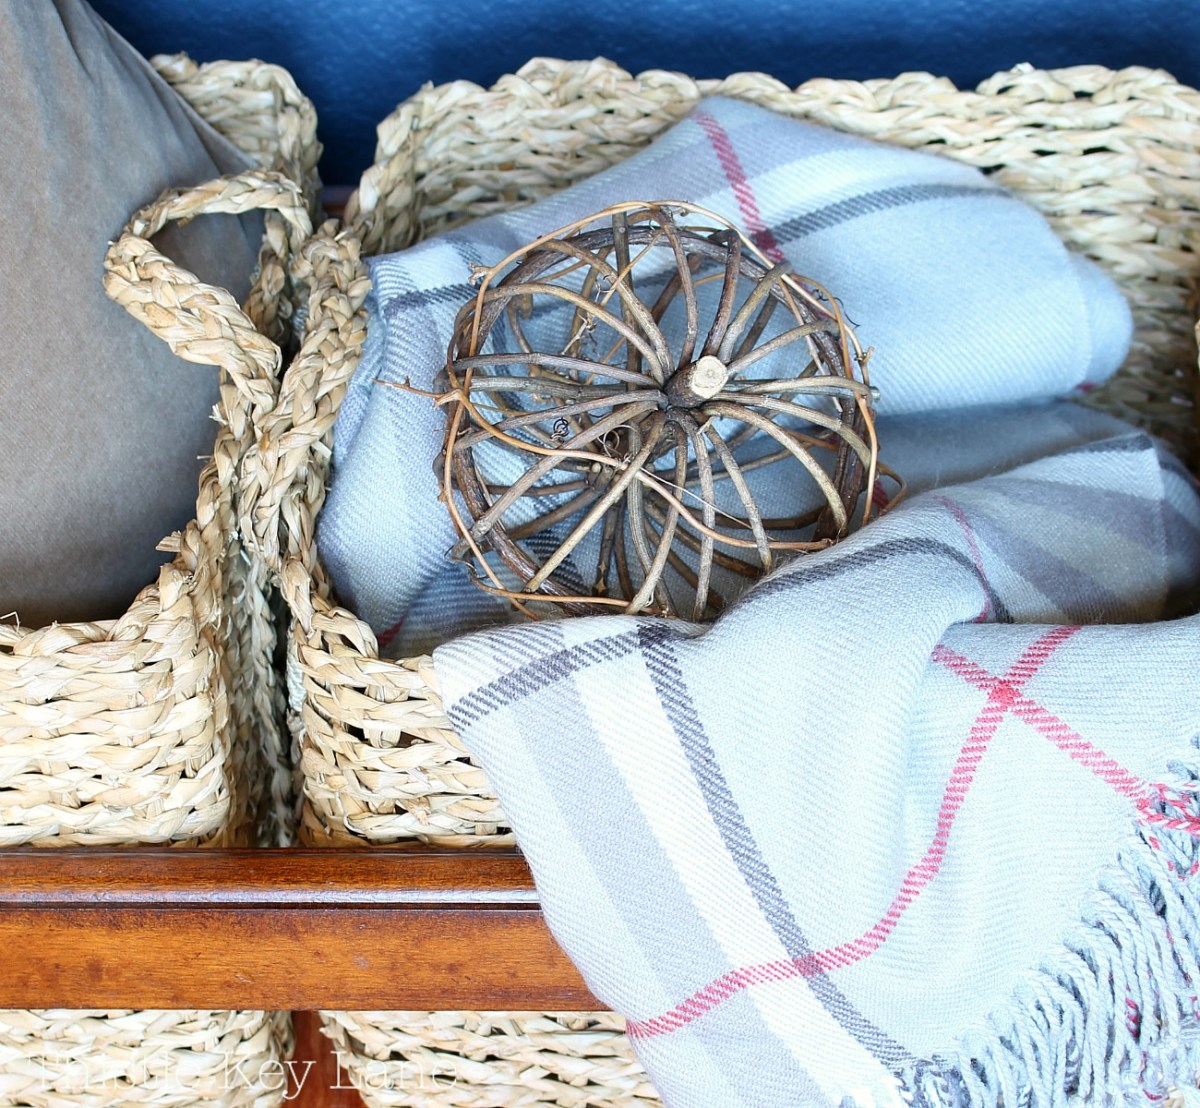 Staying Organized With Baskets